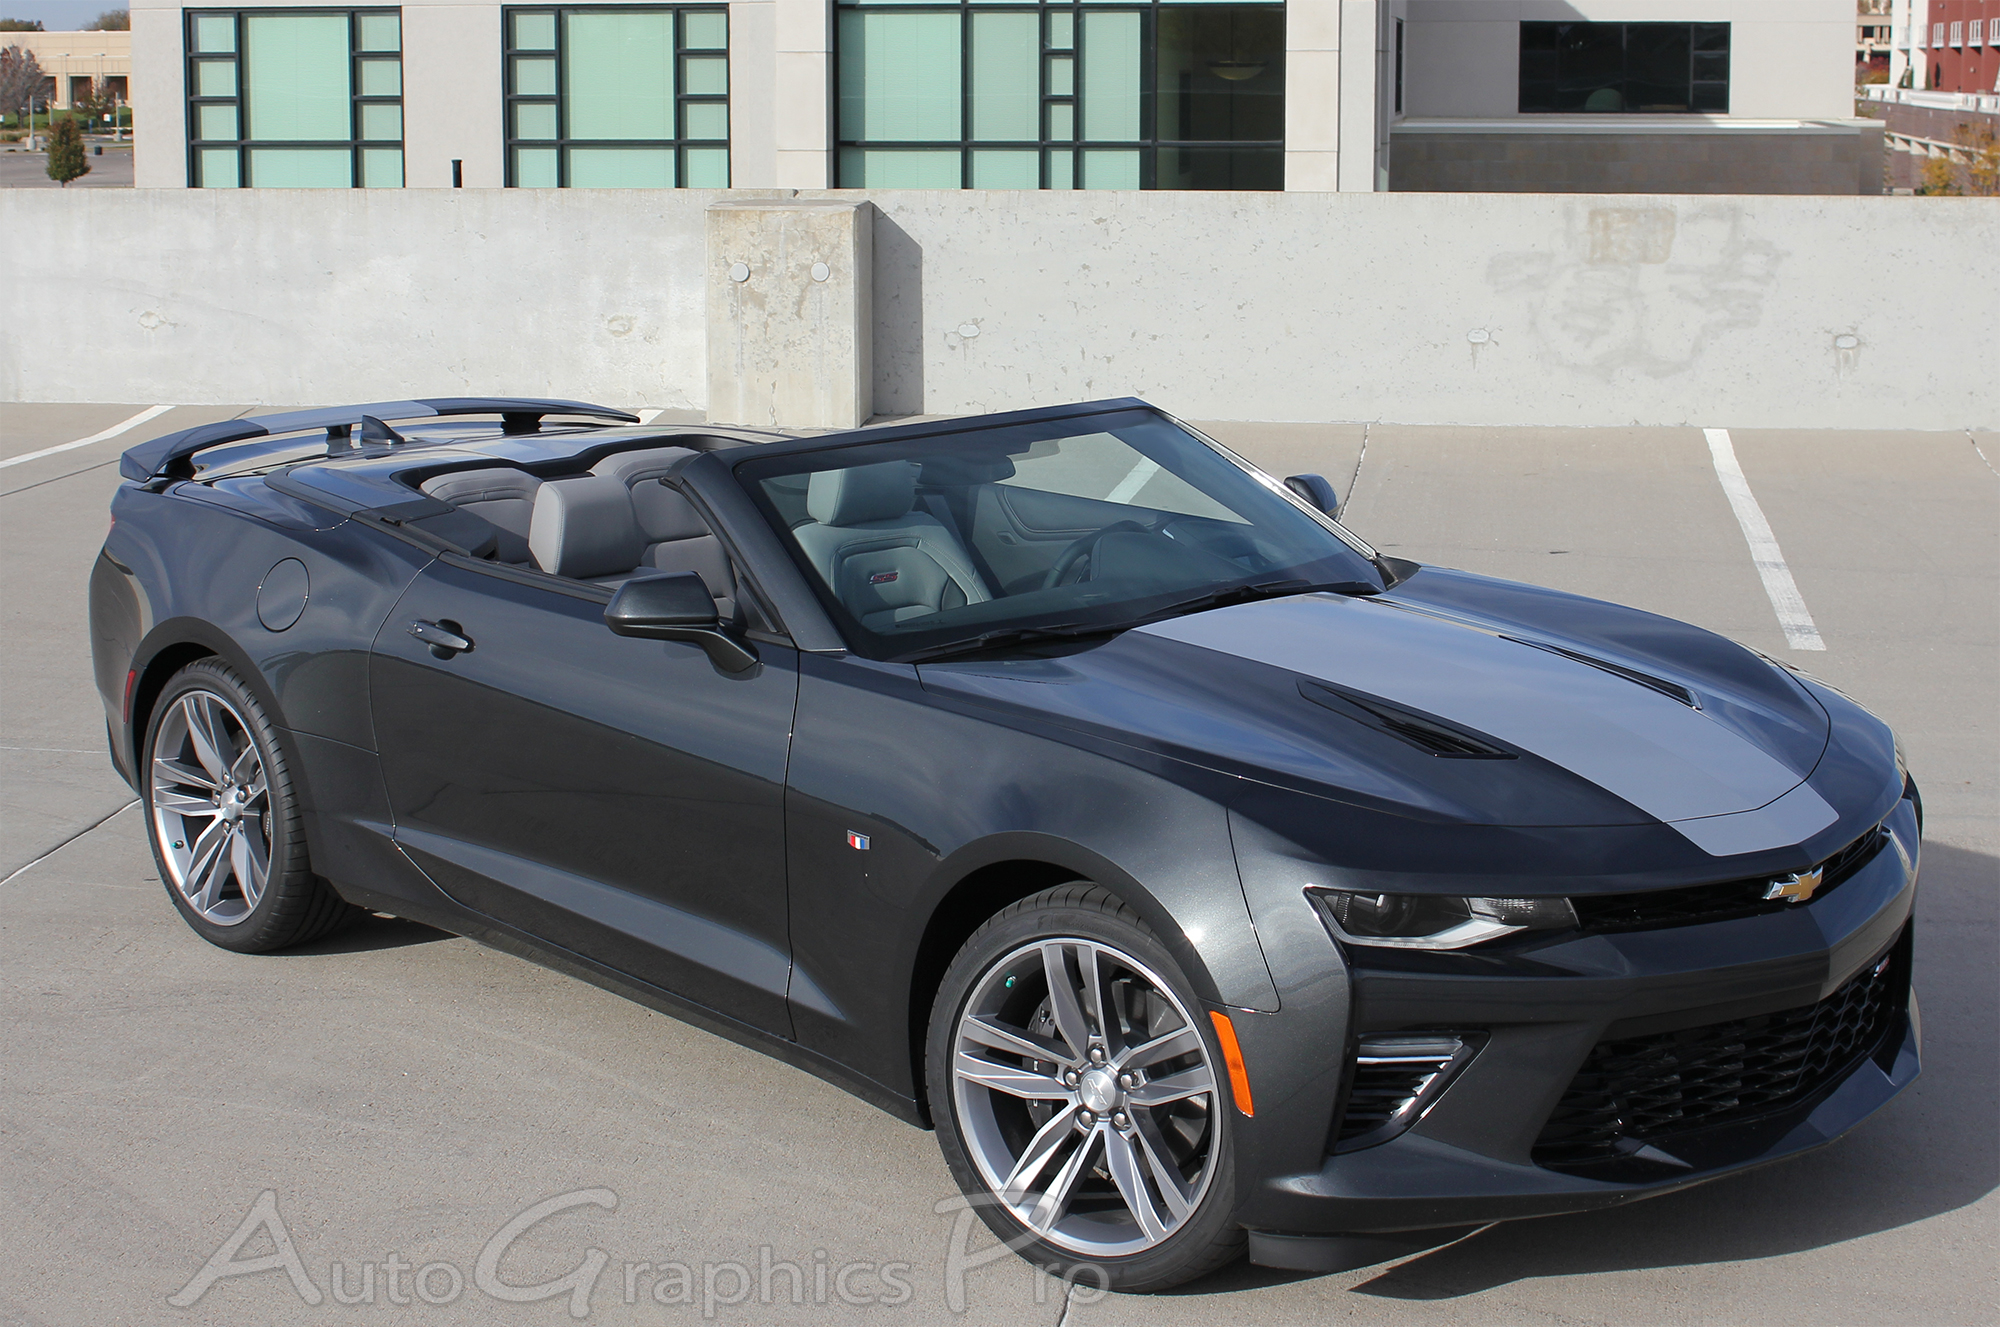 2016 2017 2018 Chevy Camaro Overdrive Convertible Center Wide Hood Roof Trunk Spoiler Rally Racing Stripes Kit Fits Ss Rs V6